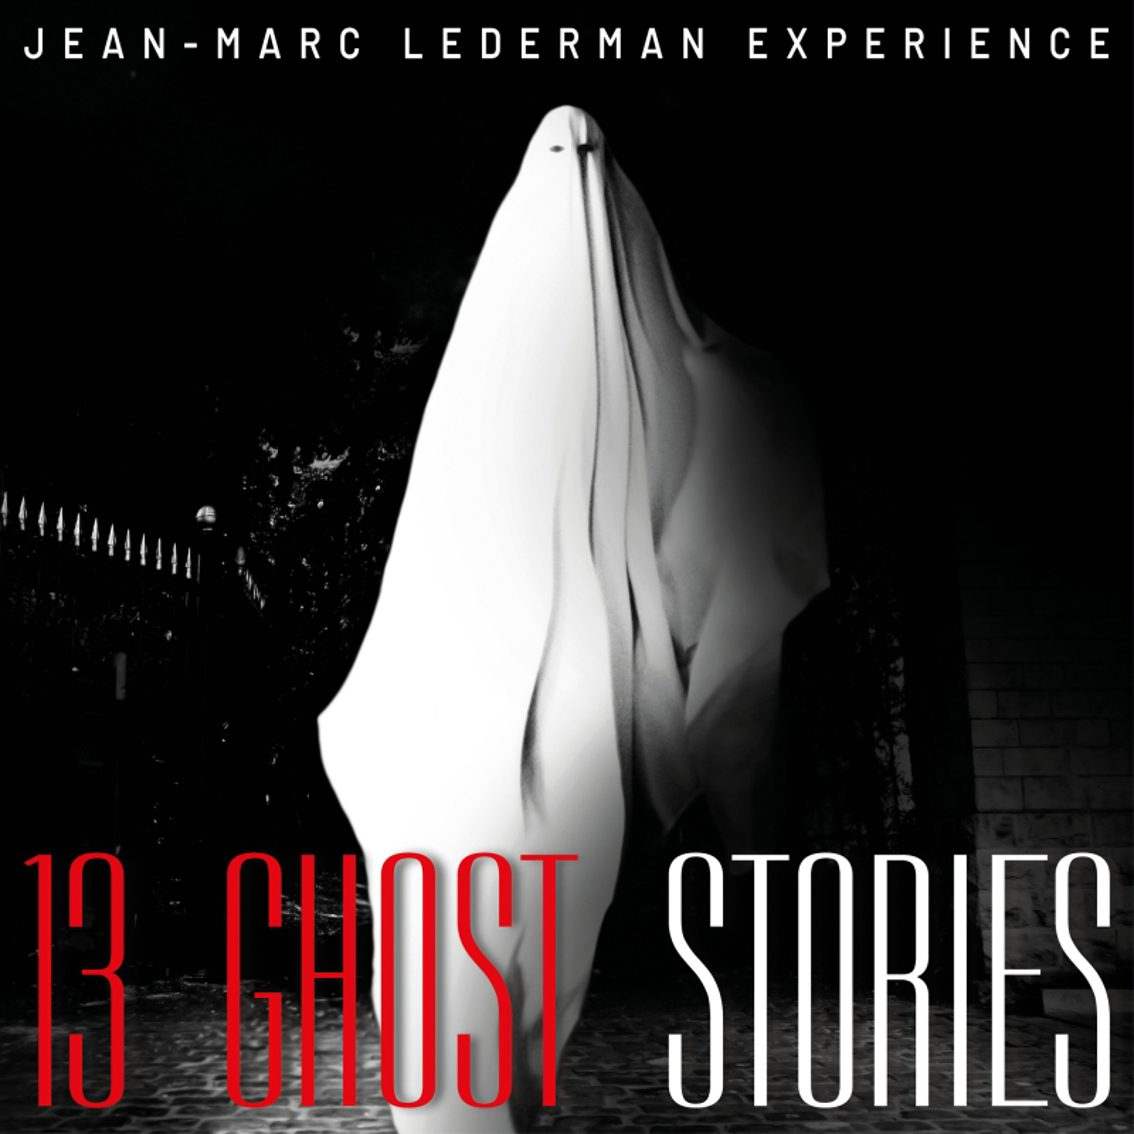 Jean-Marc Lederman Experience presents'13 Ghost Stories' - watch a first track already